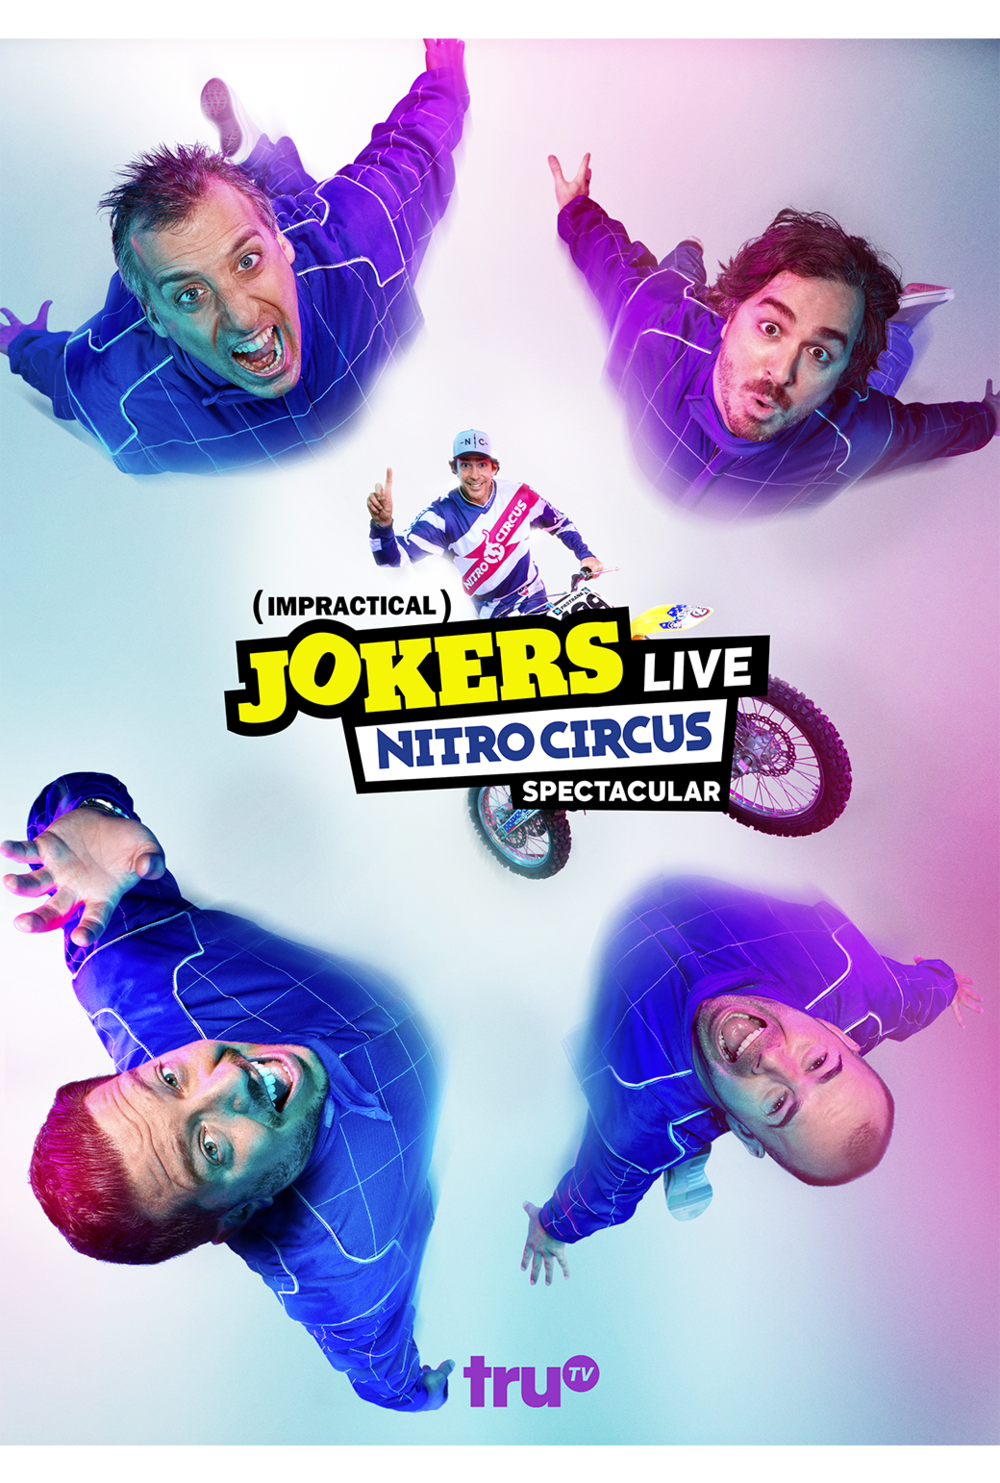 Jokers nitro circus Role: Art Director Print CD: Jim Read Promo Producer: Russell Streit Promo CD: Brendan Stern